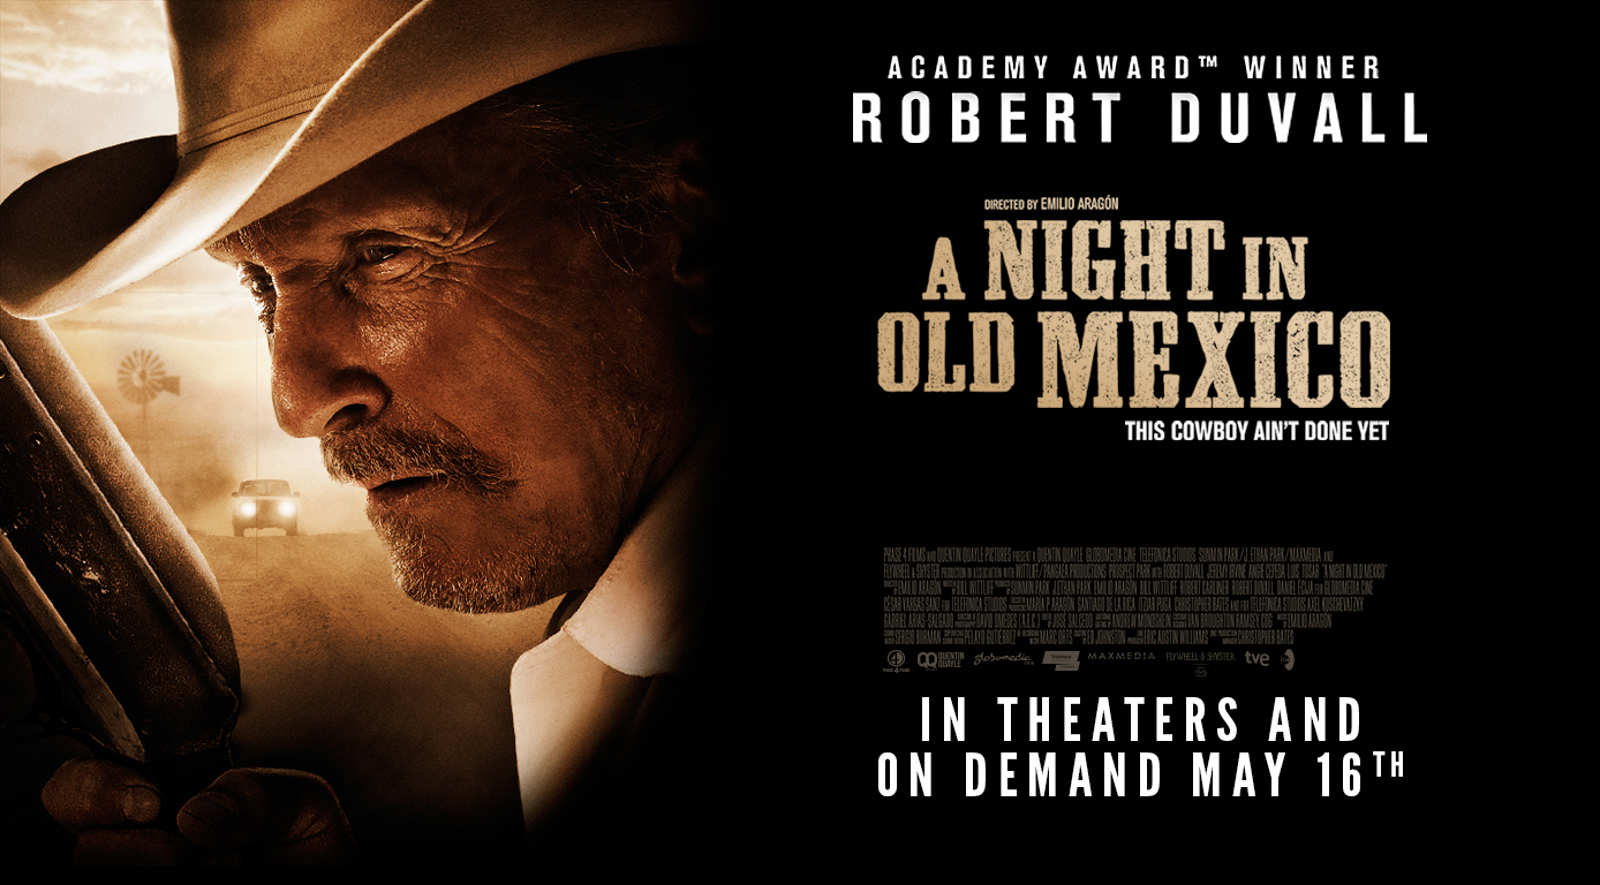 a night in old mexico promo